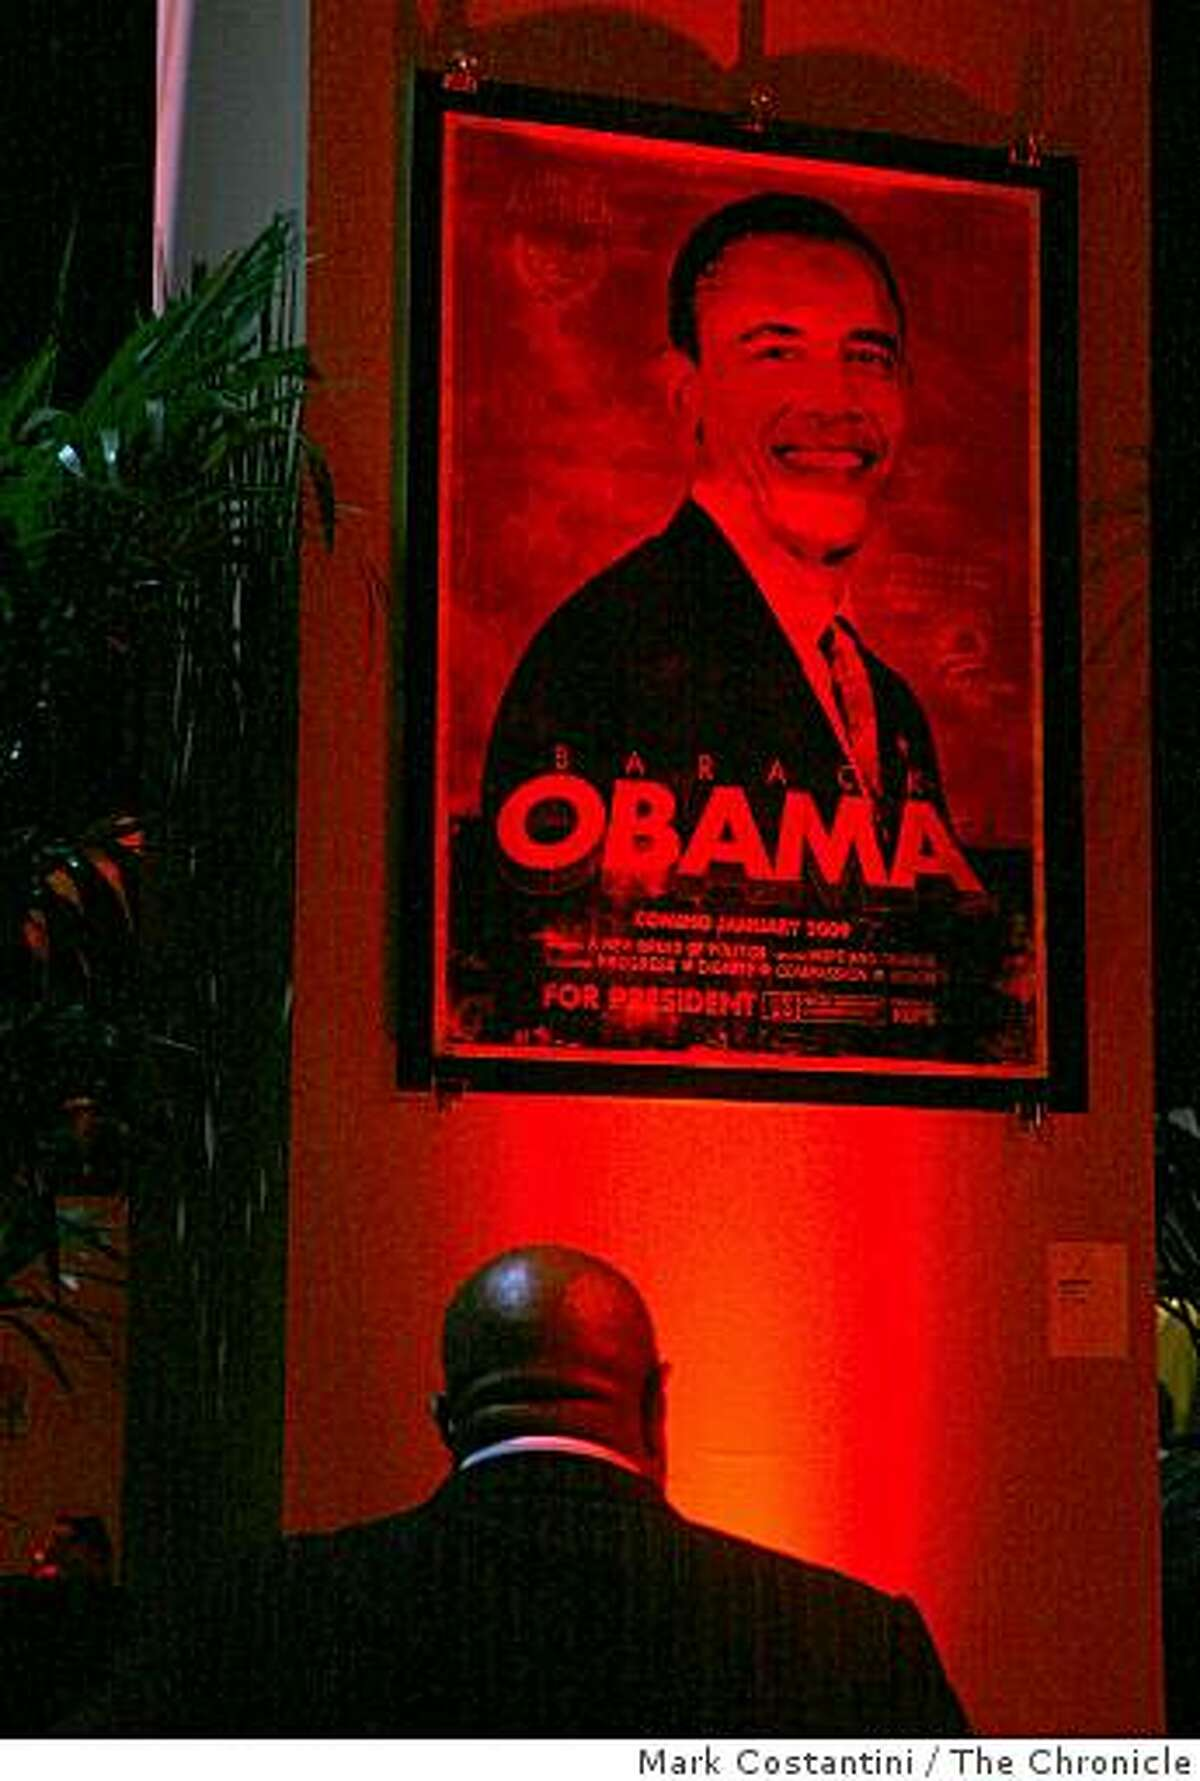 A partygoer looks at an Obama poster at the Inauguration West party celebrating the inauguration of Barack Obama at the Metreon in San Francisco, Calif. on Tuesday January 20, 2009.